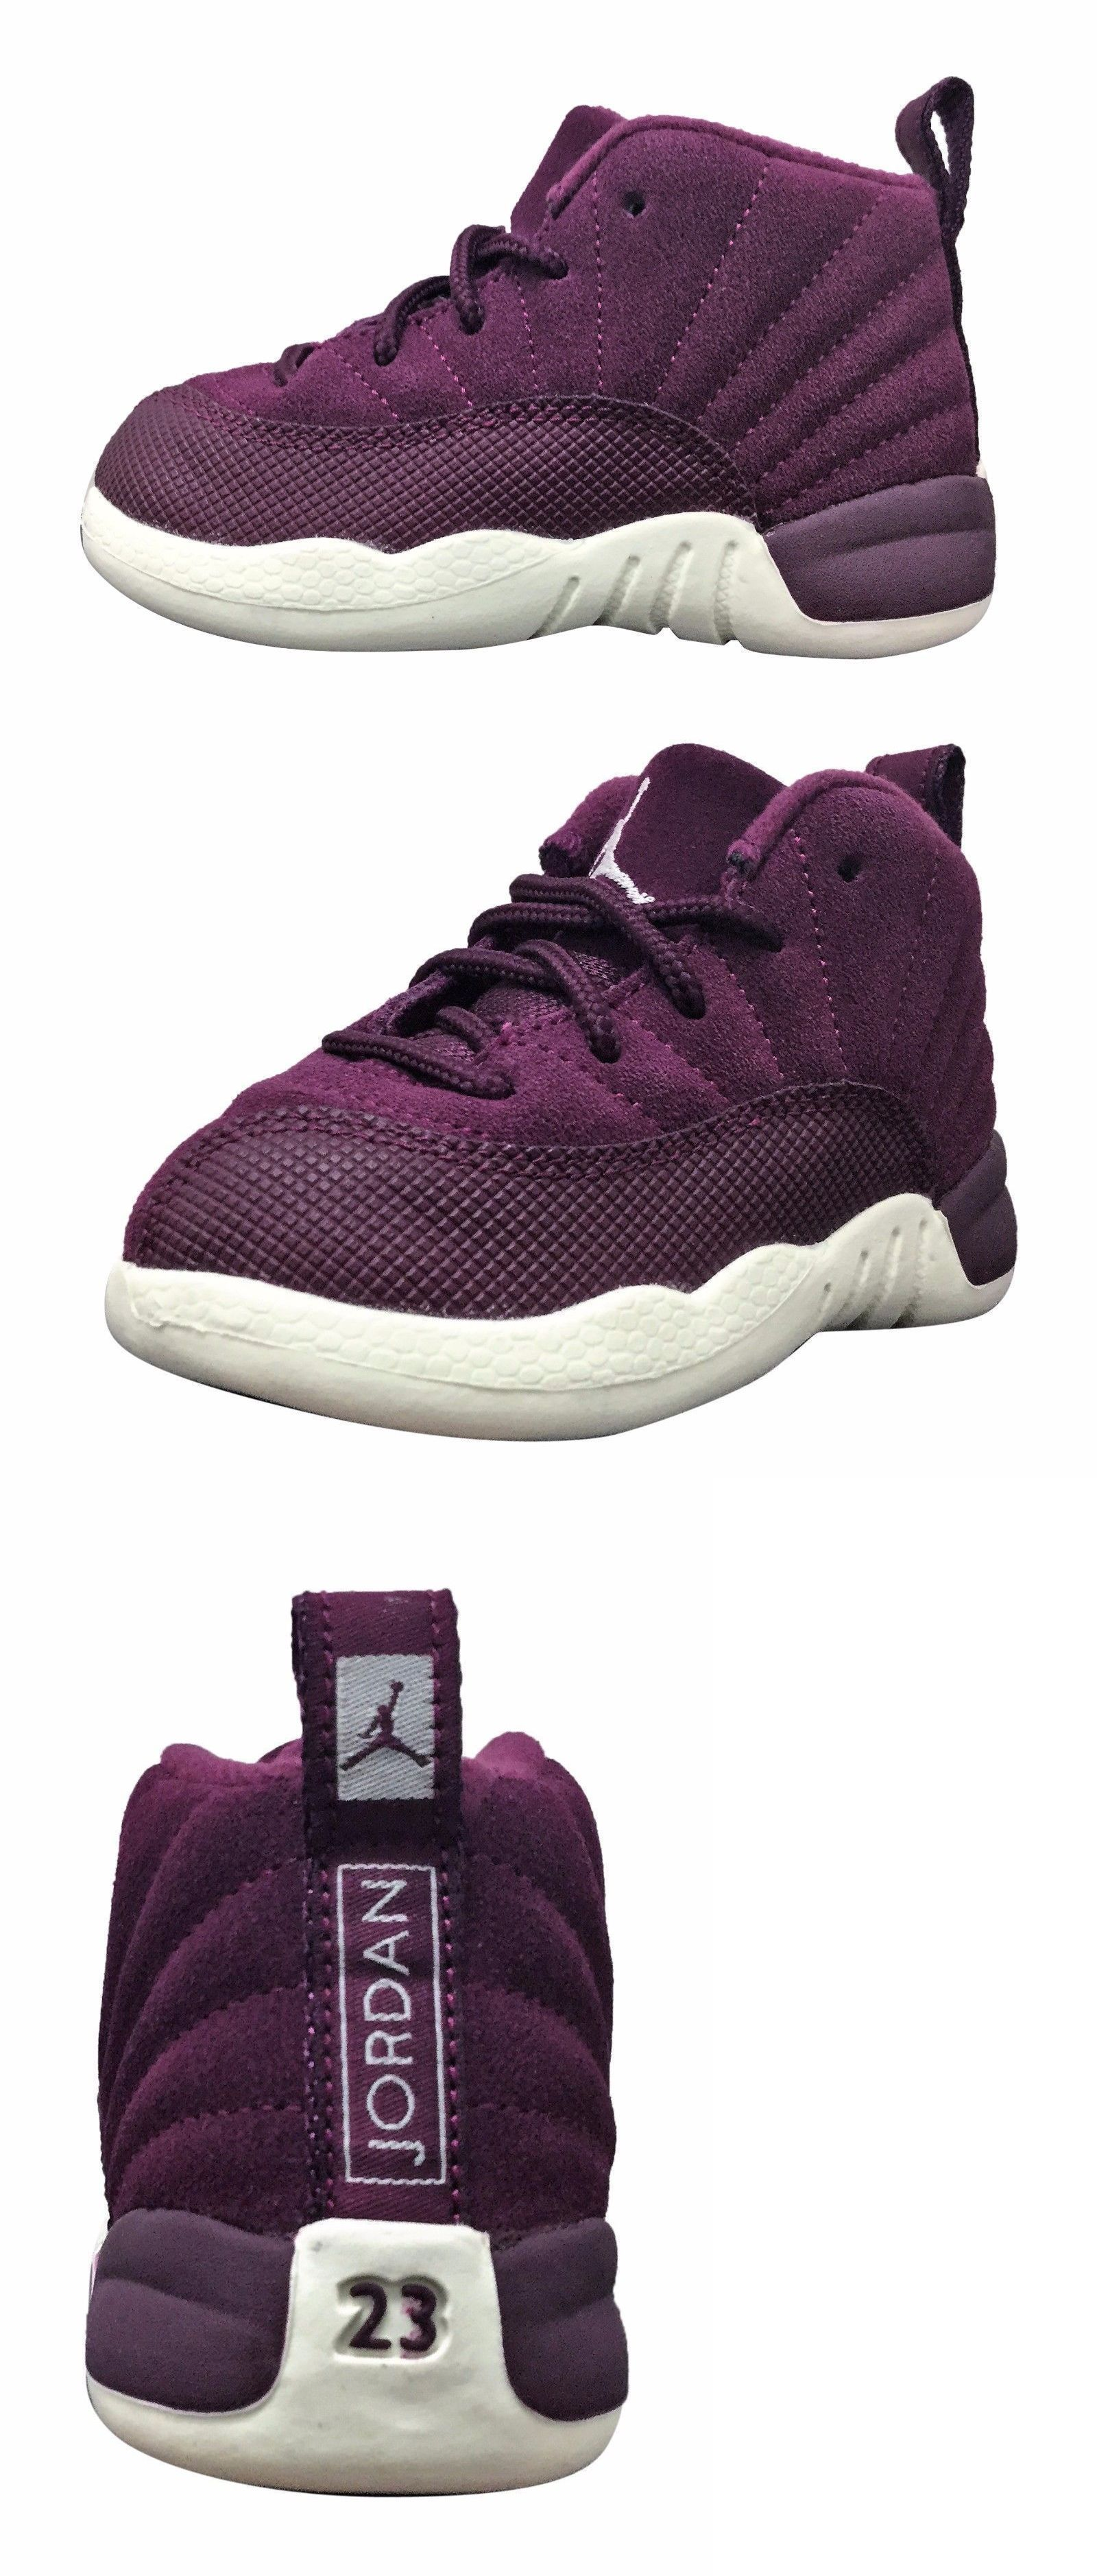 7c542907615e Infant Shoes  New Baby Air Jordan Retro 12 Toddler Shoes (850000-617)  Bordeaux Sail -  BUY IT NOW ONLY   74.99 on eBay!